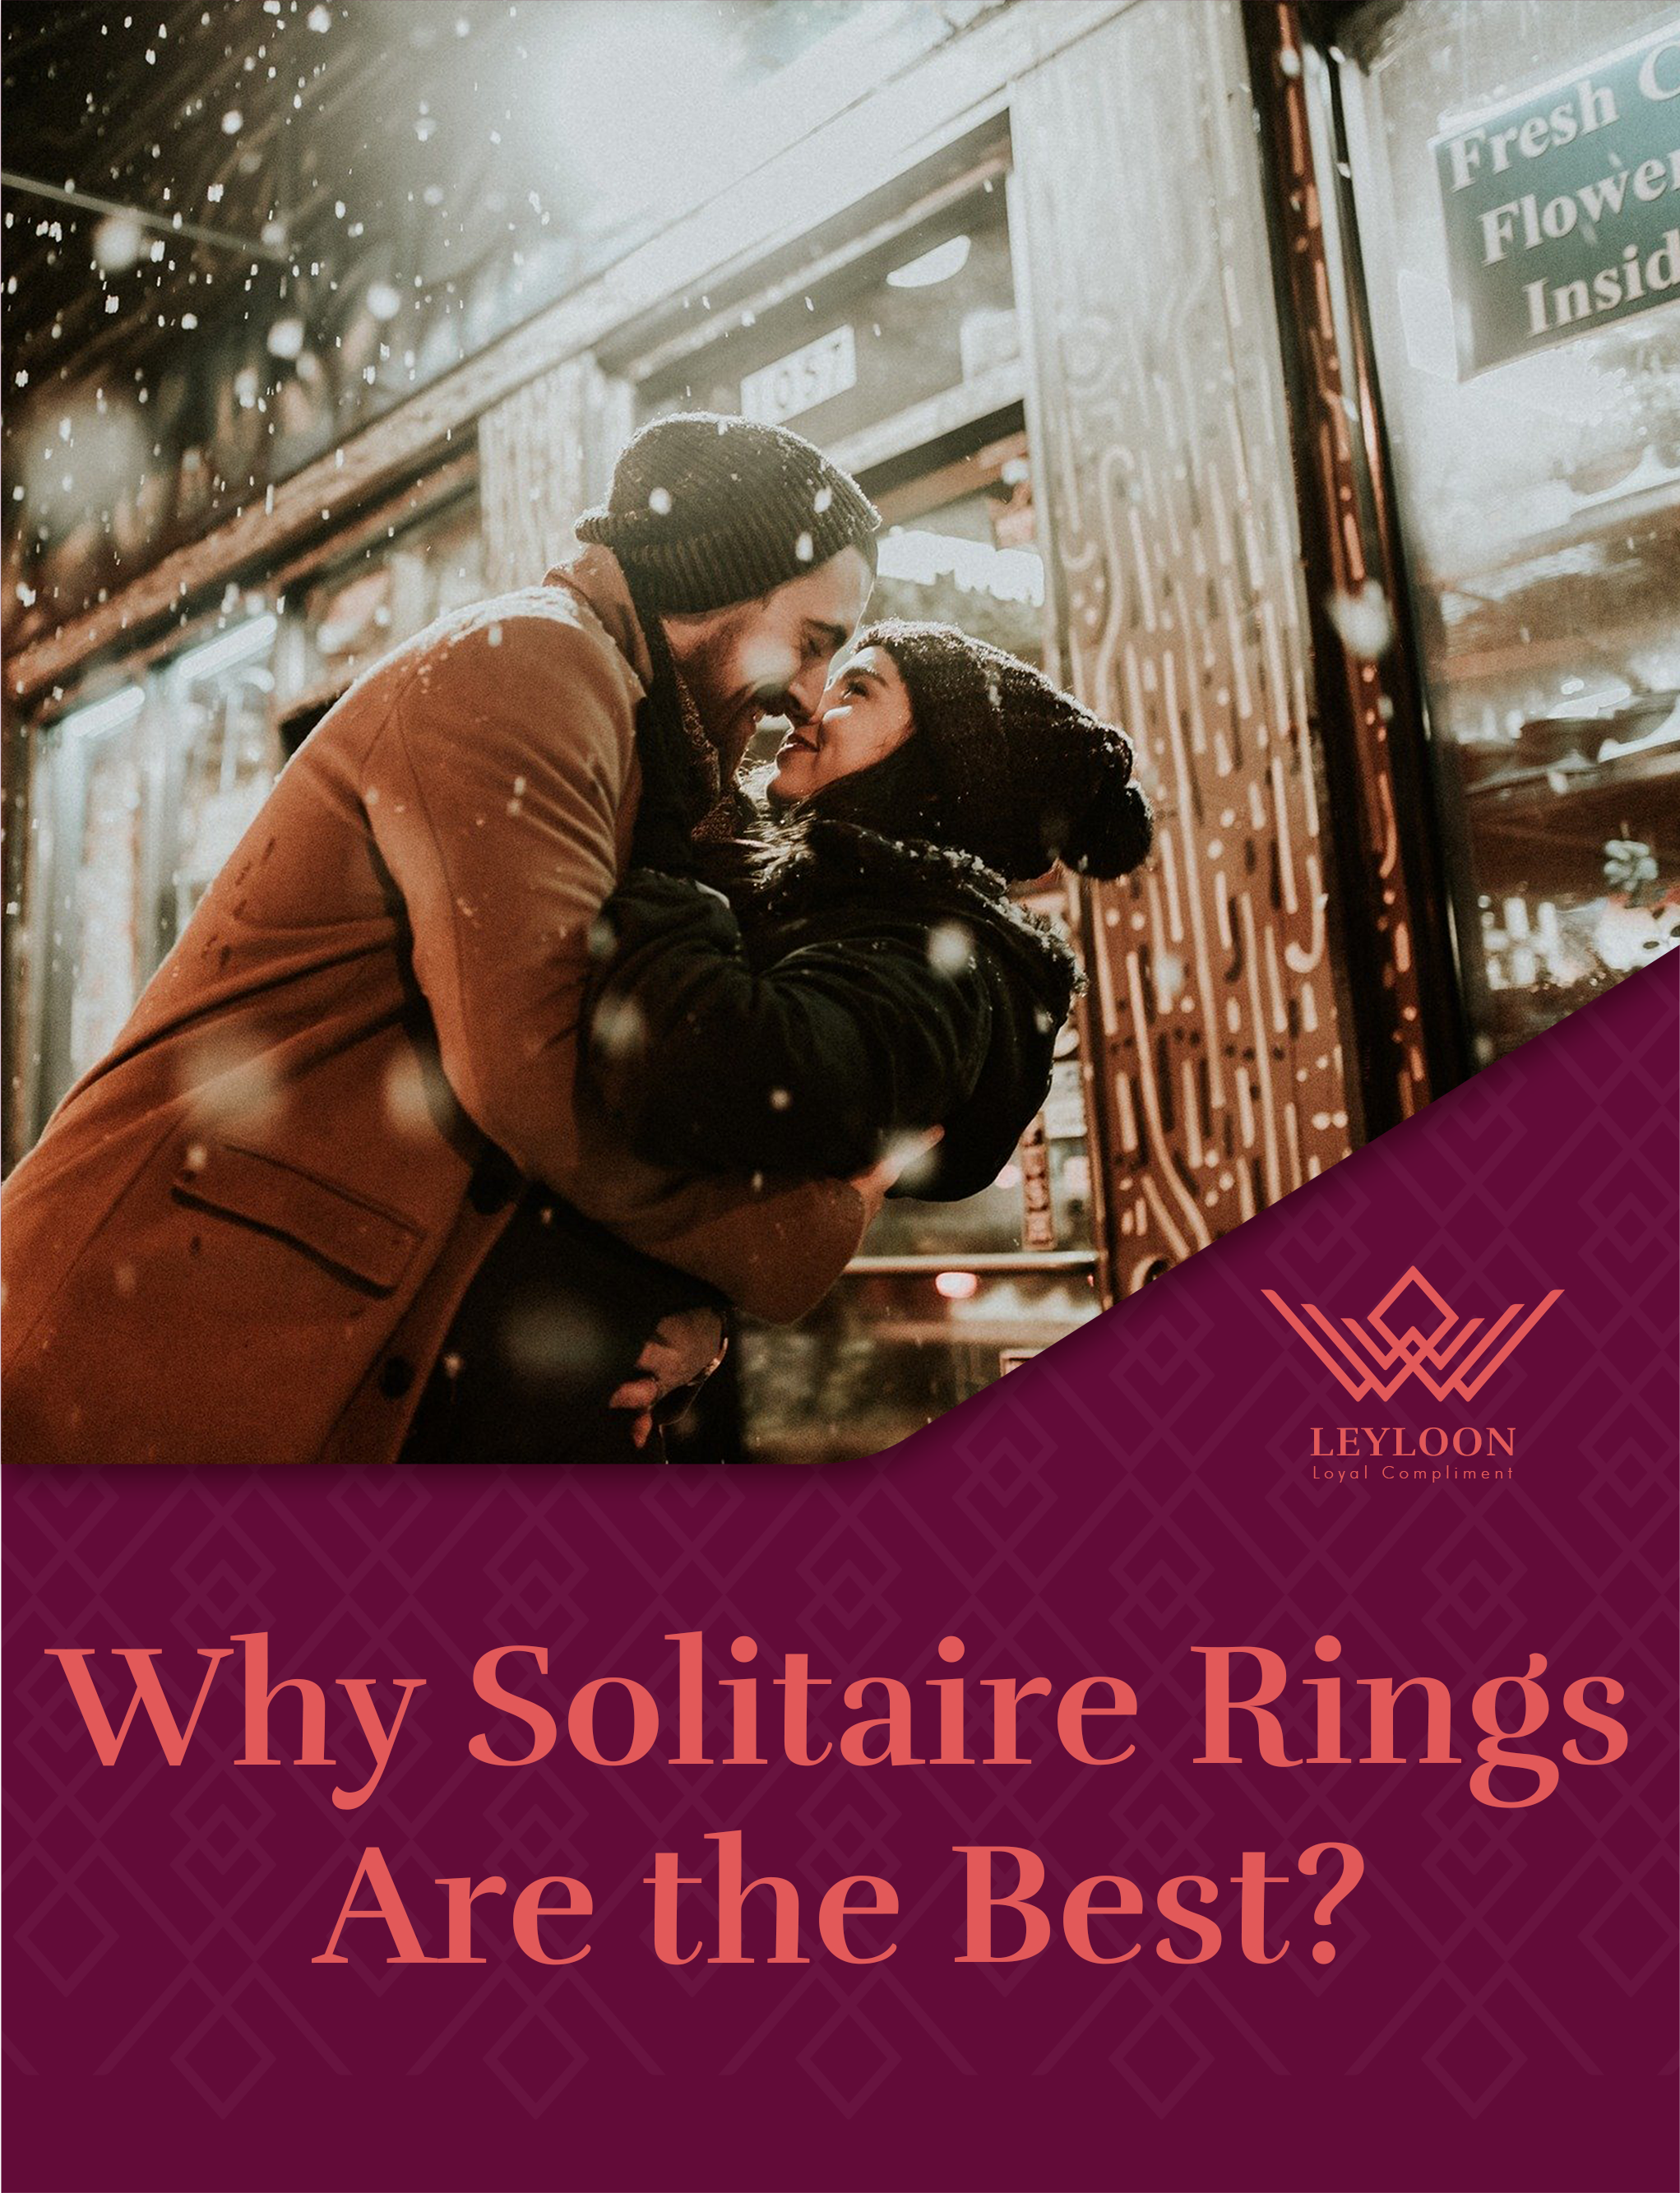 Why Solitaire Rings Are the Best?